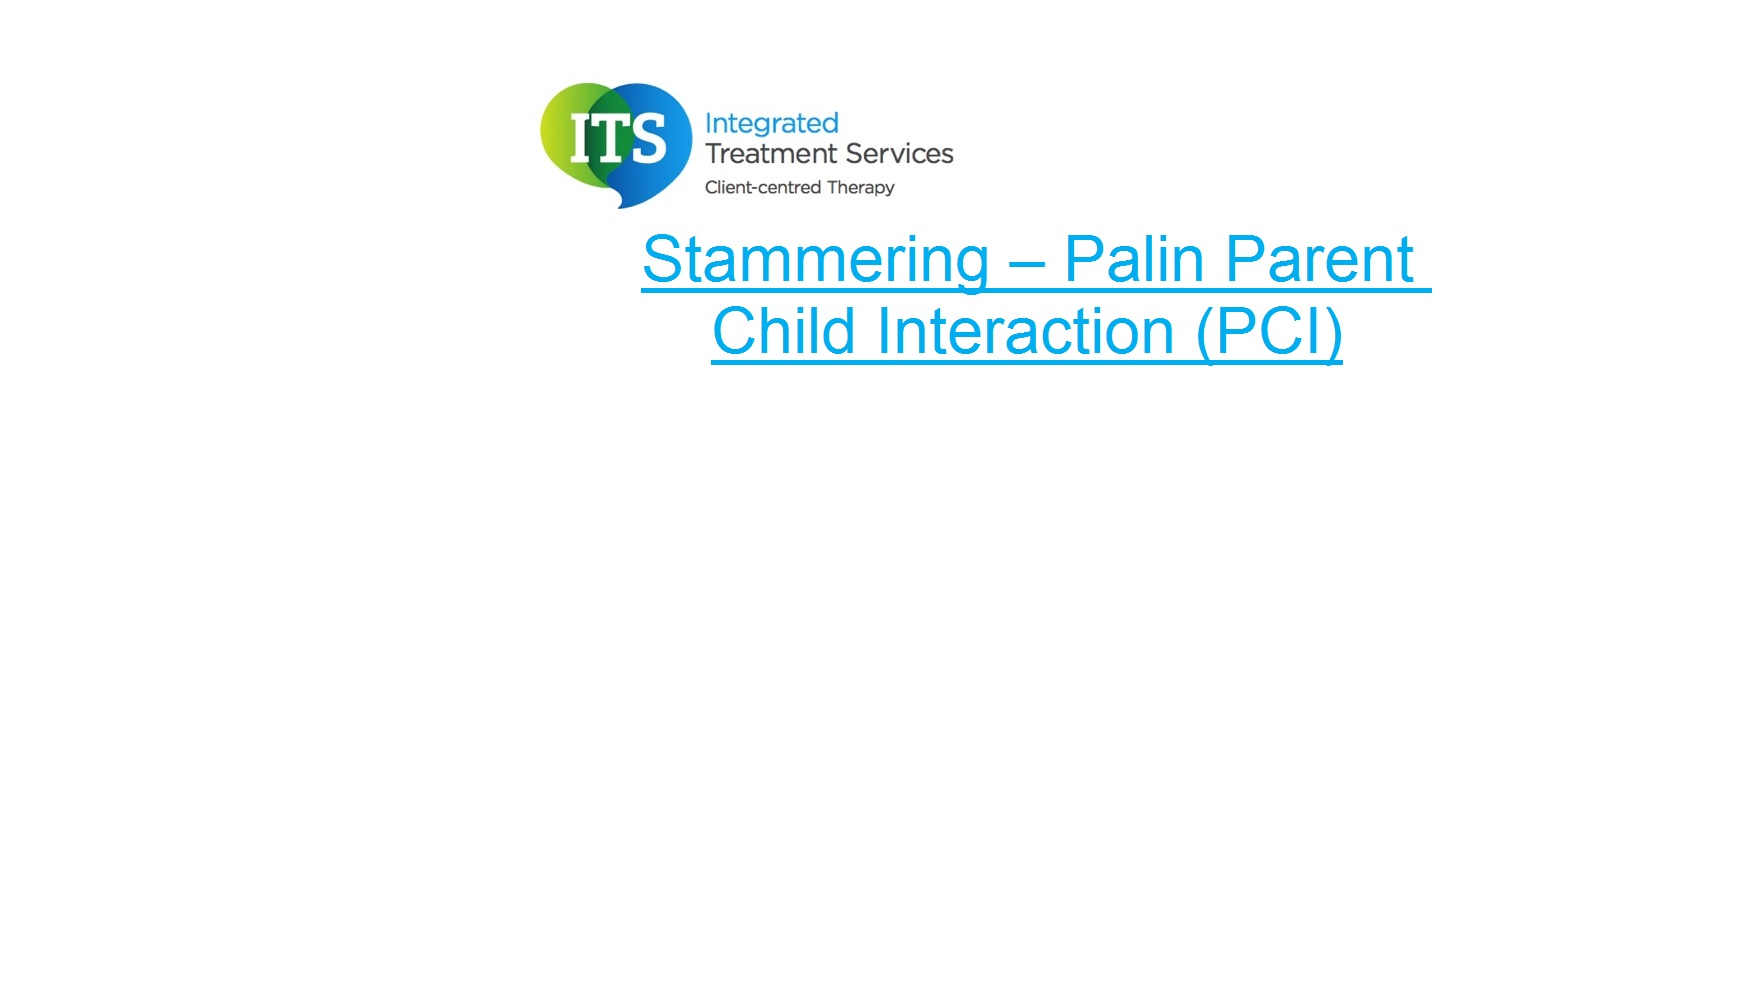 Palin Parent Child Interaction Information Sheet